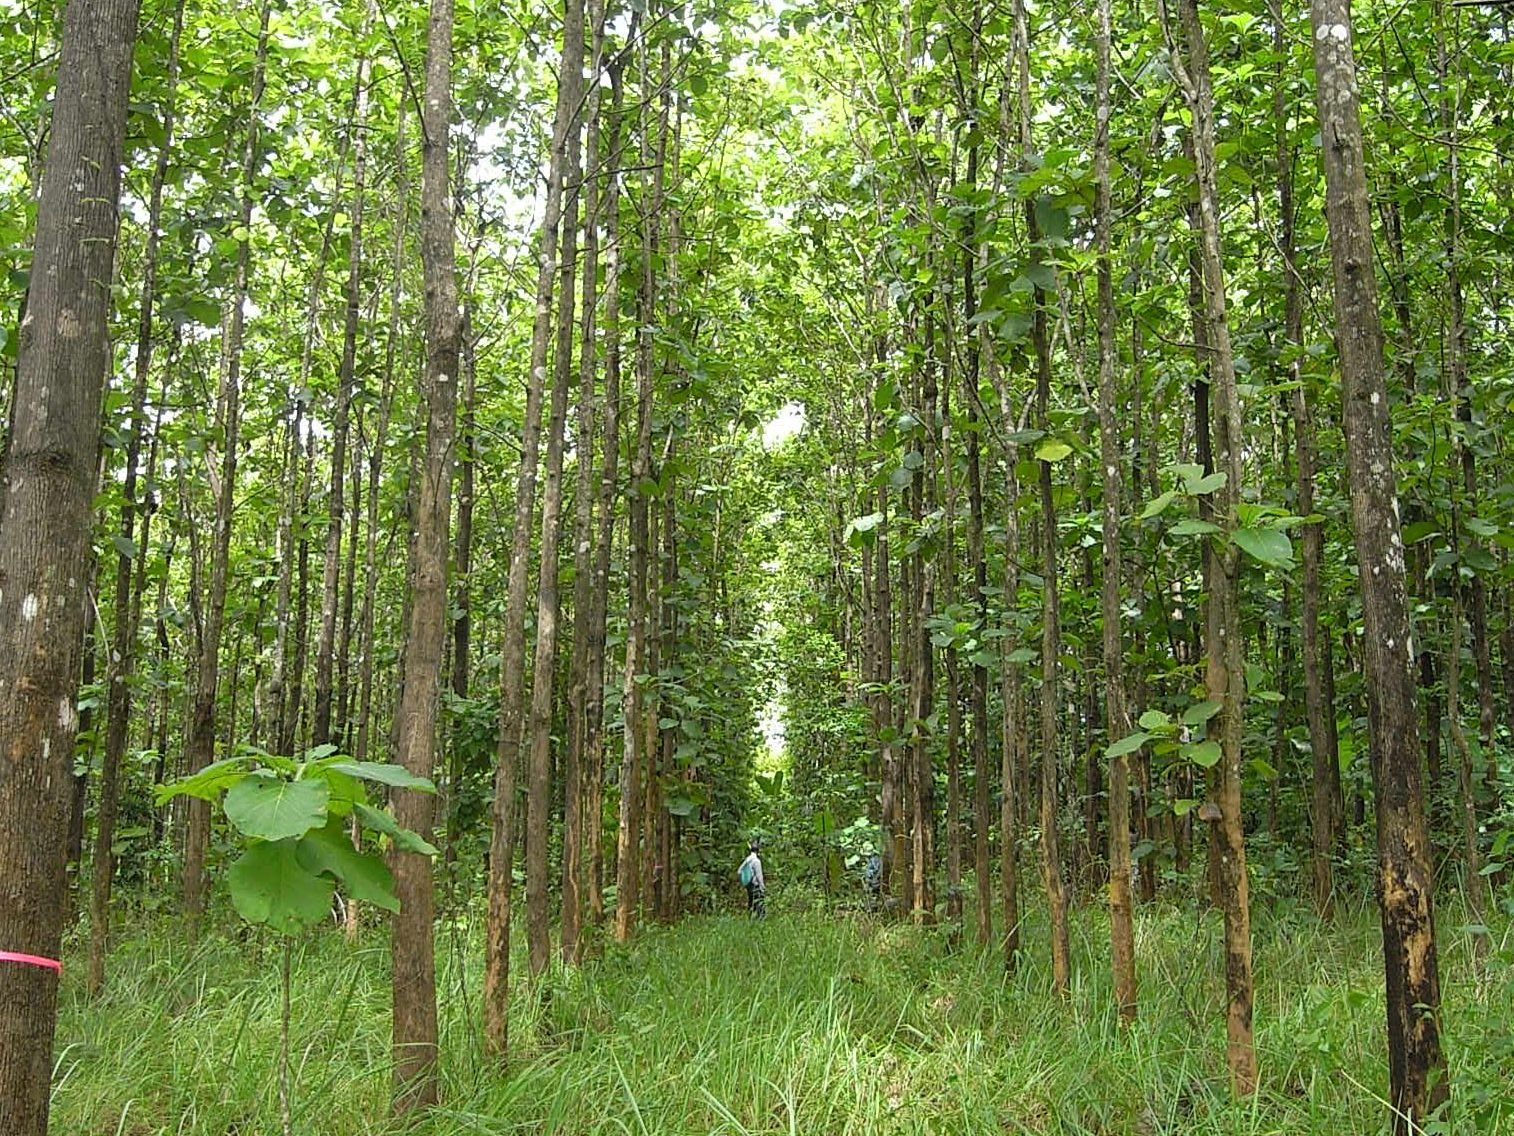 Fig. 2. A teak (Tectona grandis) plantation, 15 years old, Thailand